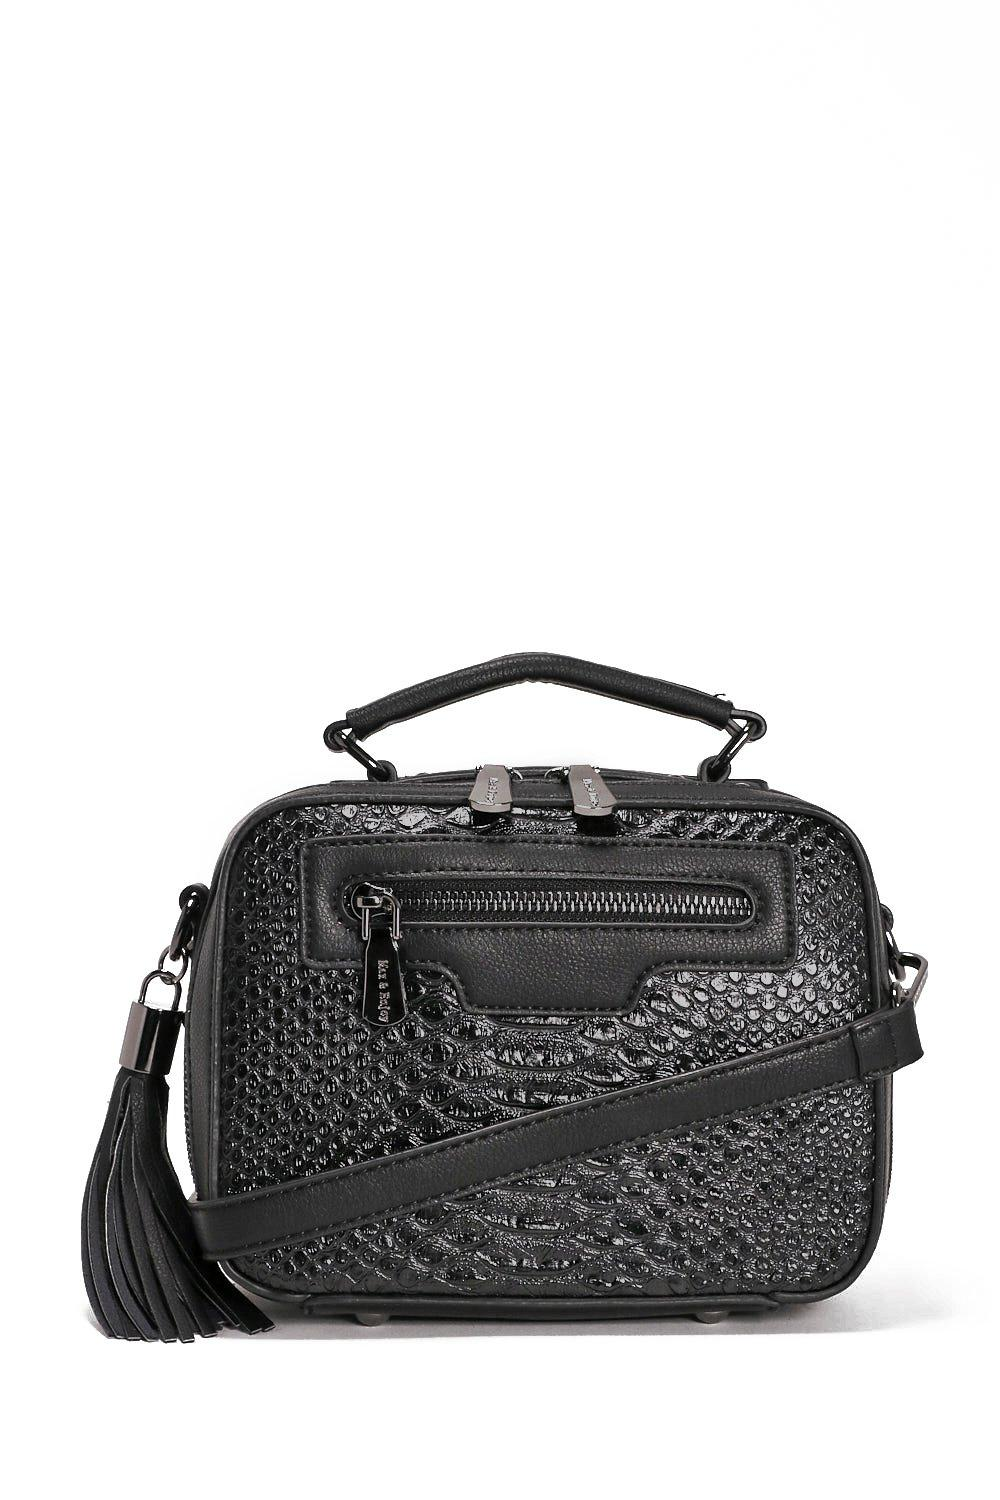 bde774f959 Click to expand · WANT Box Seat Crossbody Bag. Hover to zoom